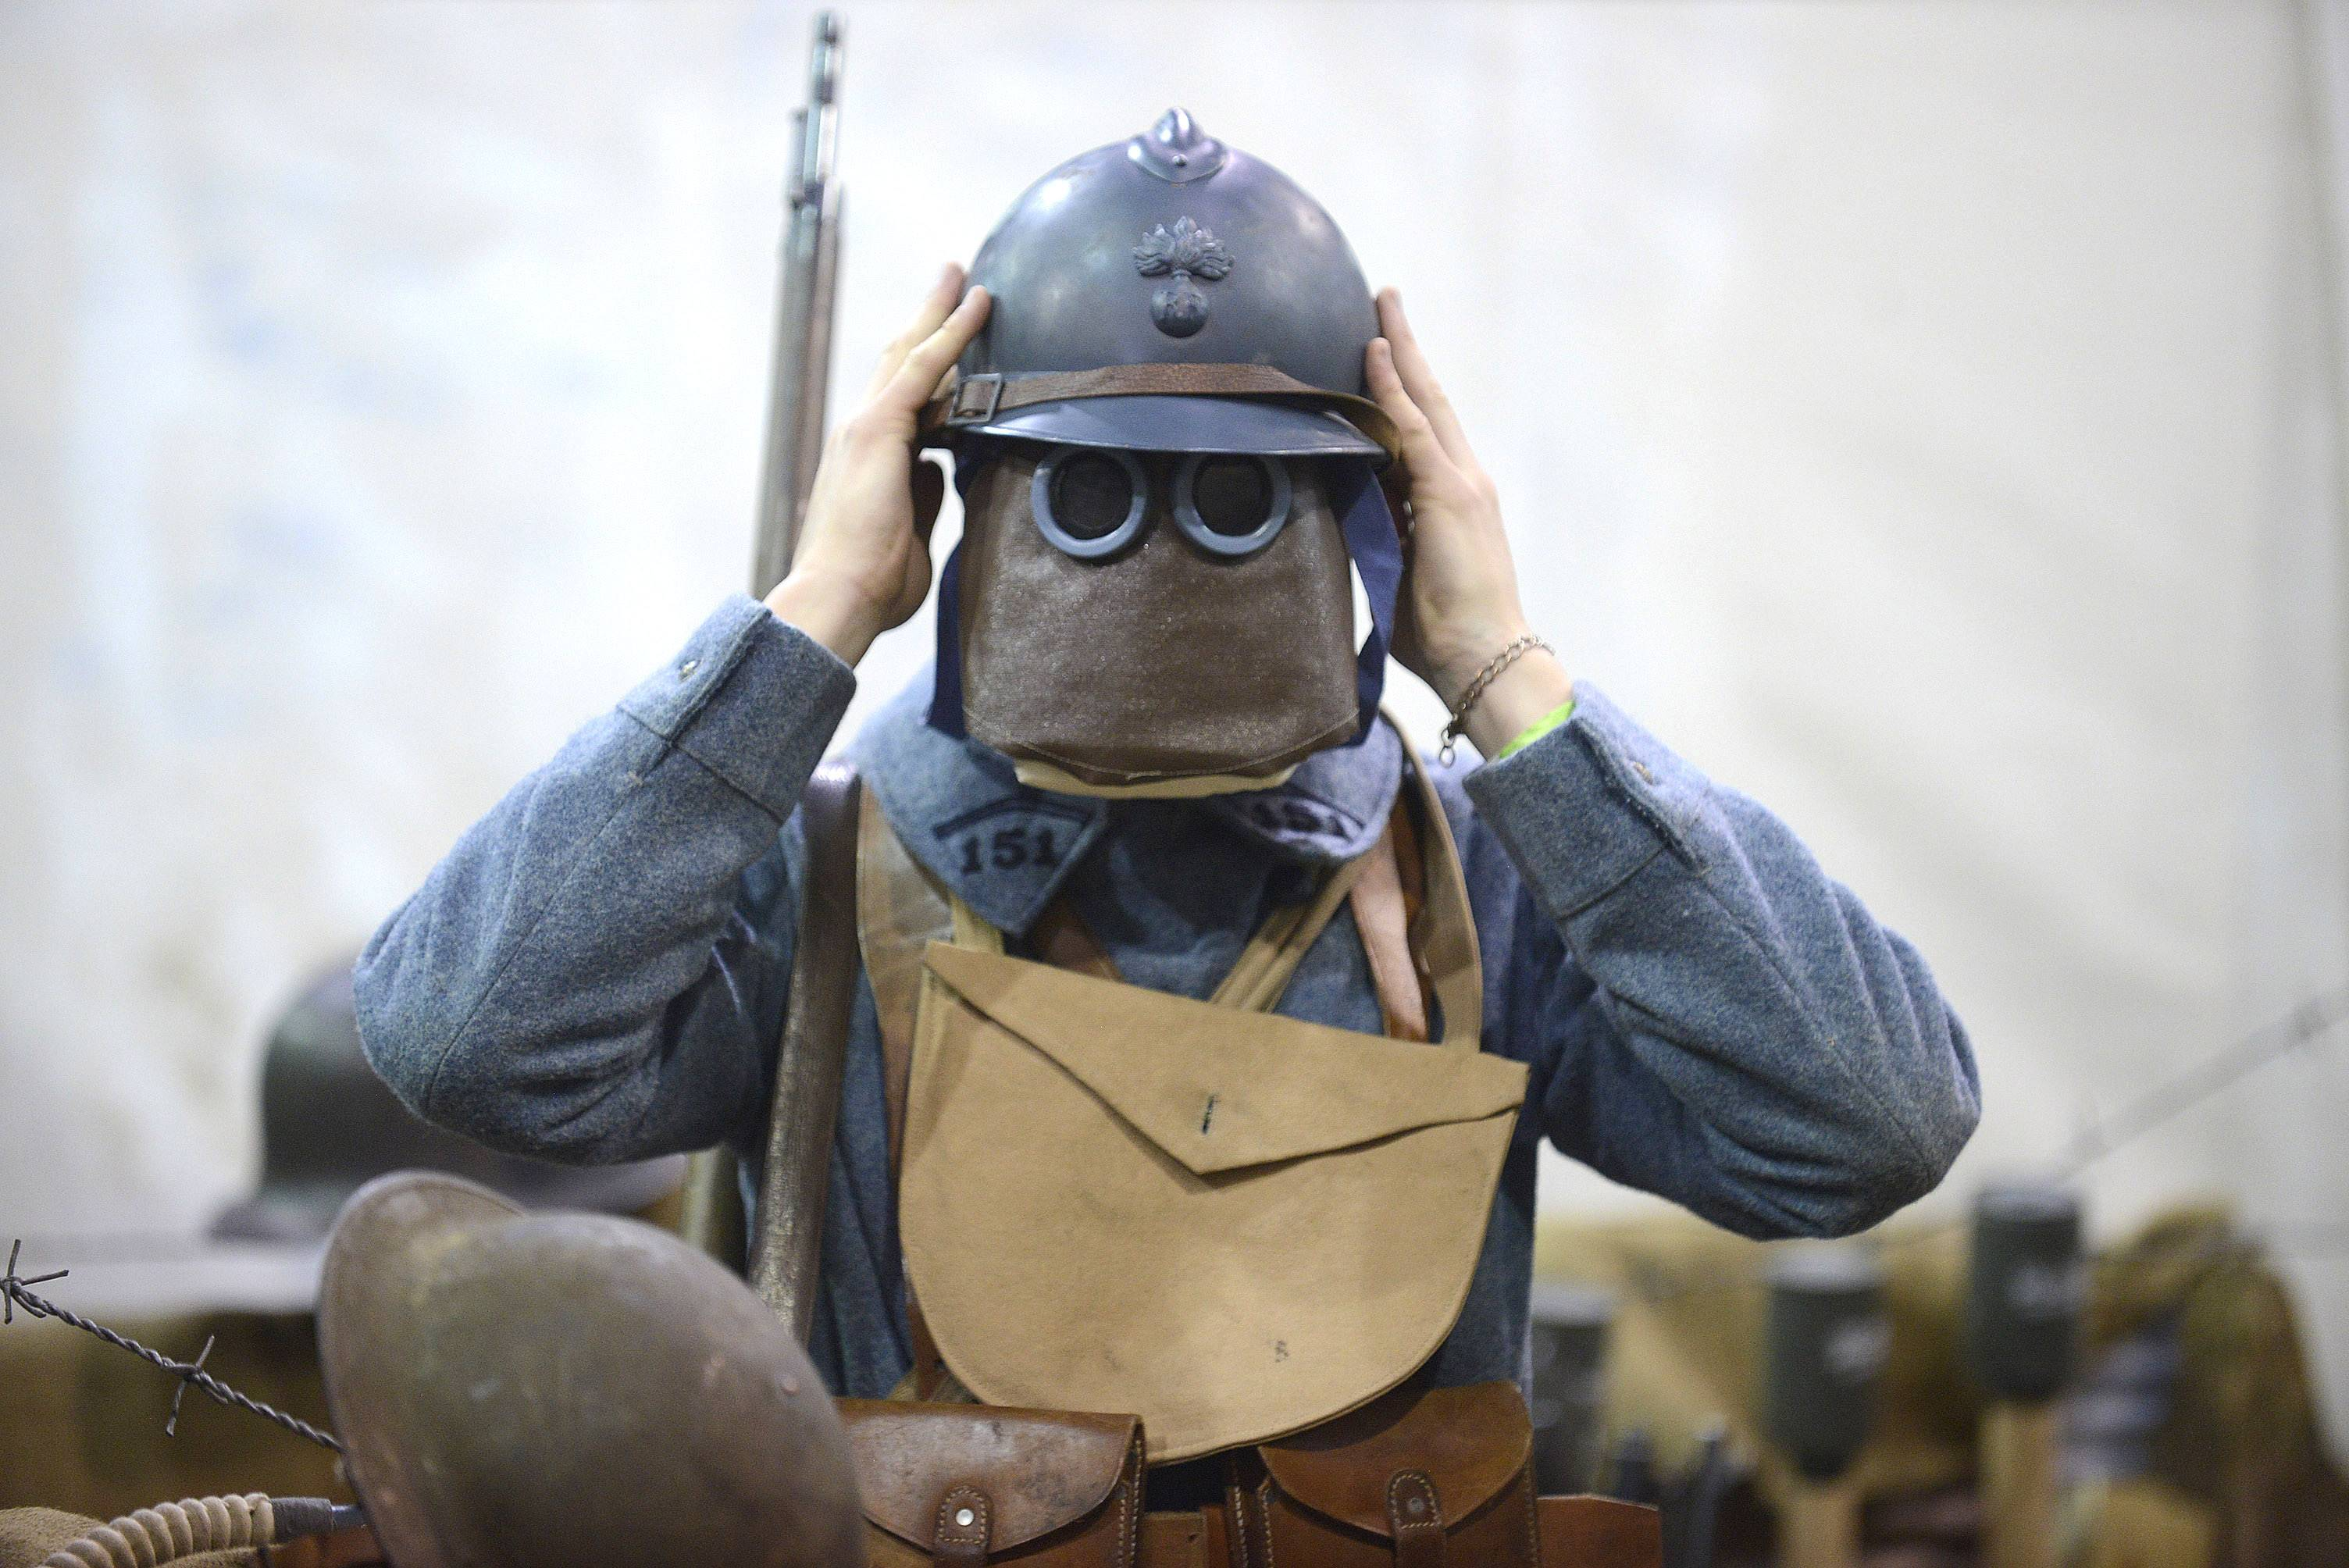 Dressed in WWI French infantry soldier wearing a gas mask, Josh Melnychuk of Barrington caught my eye at the recent Military History Fest at the Pheasant Run Resort and Conference Center in St. Charles. To me, the mask made him look like a cross between a Lego character and something out of the Star Wars trilogy, though its design dates back to 1916.